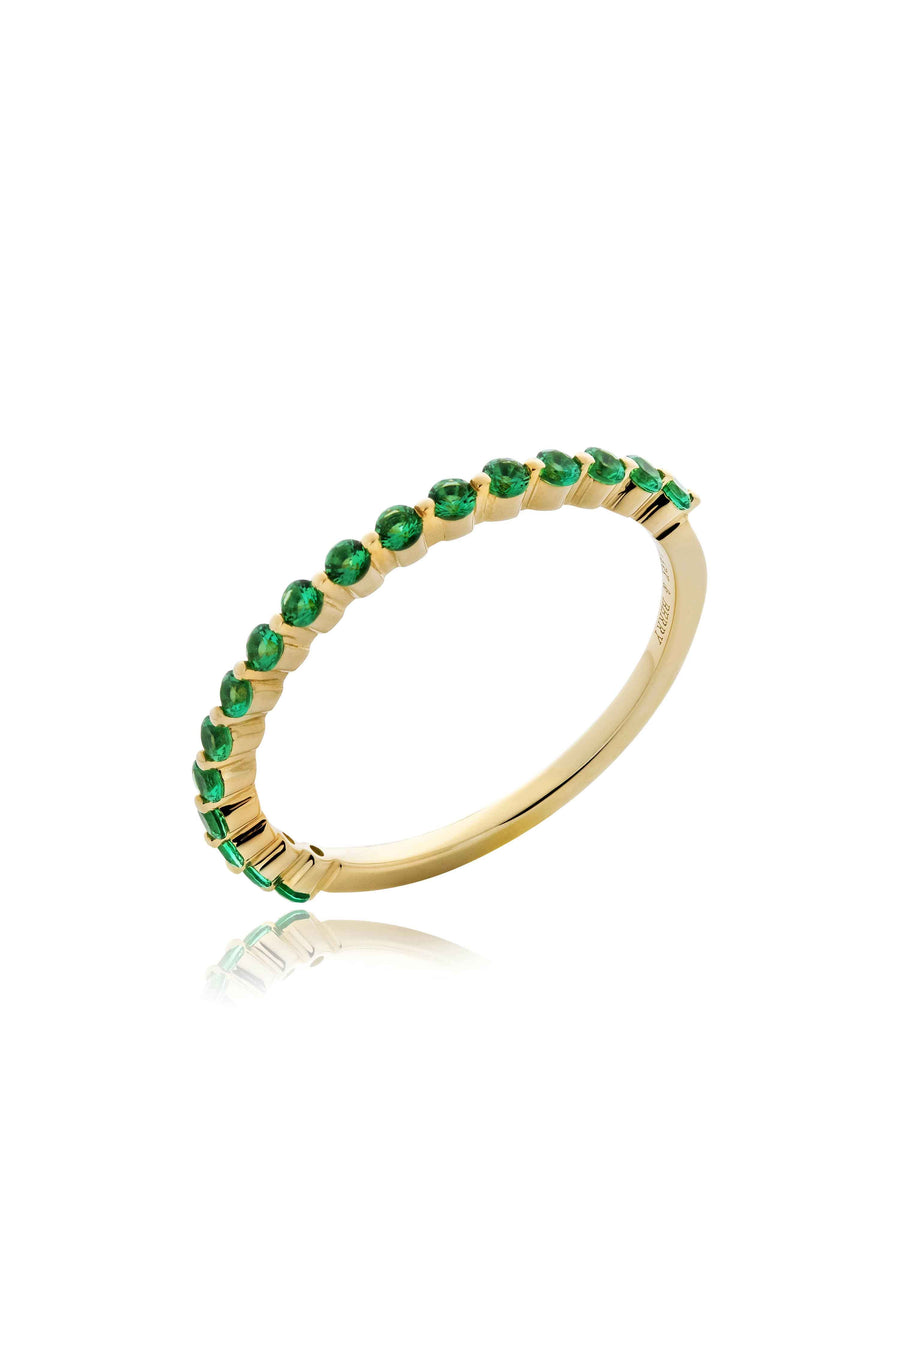 Modernist Stackable Emerald Ring in 14K Gold